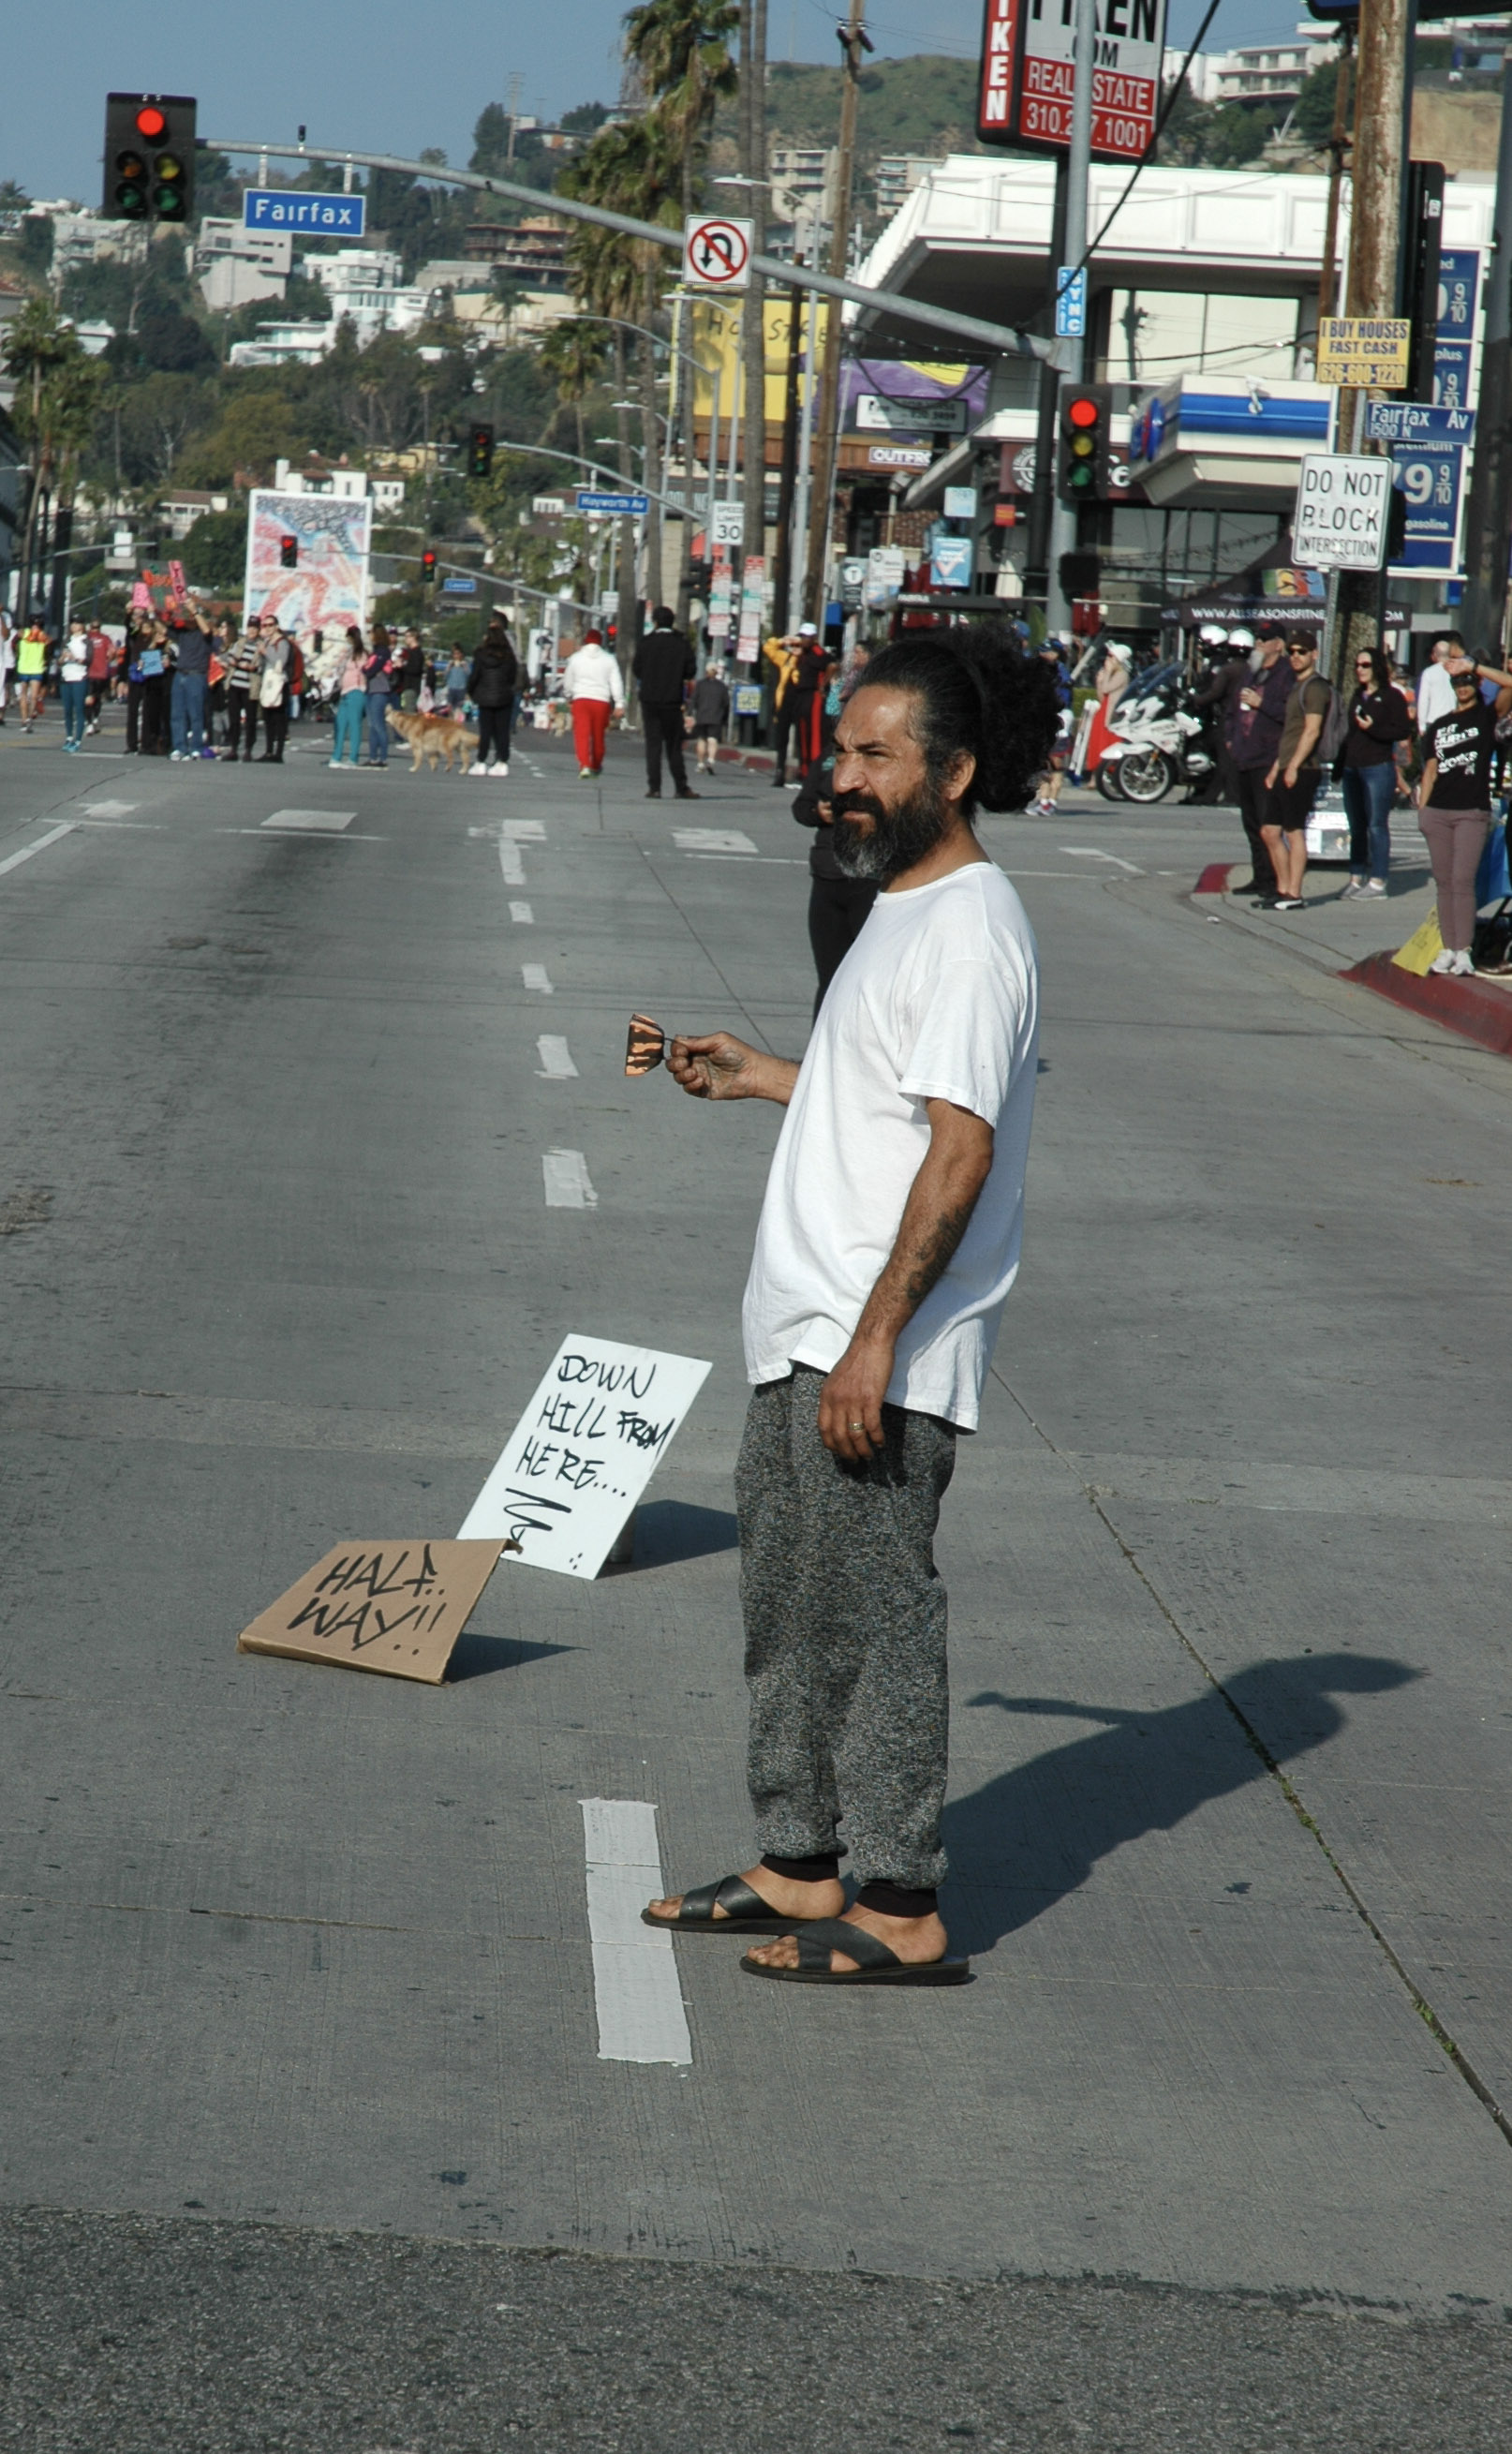 """A Los Angeles Marathon spectator marks the """"Half Way!!"""" point in the race, as he watches the marathon go by.  The half-way point of the race, mile 13, was located at the intersection of Sunset Boulevard and Fairfax Avenue in Los Angeles, California on March 24, 2019.  (Dakota Castets-Didier/The Corsair)"""